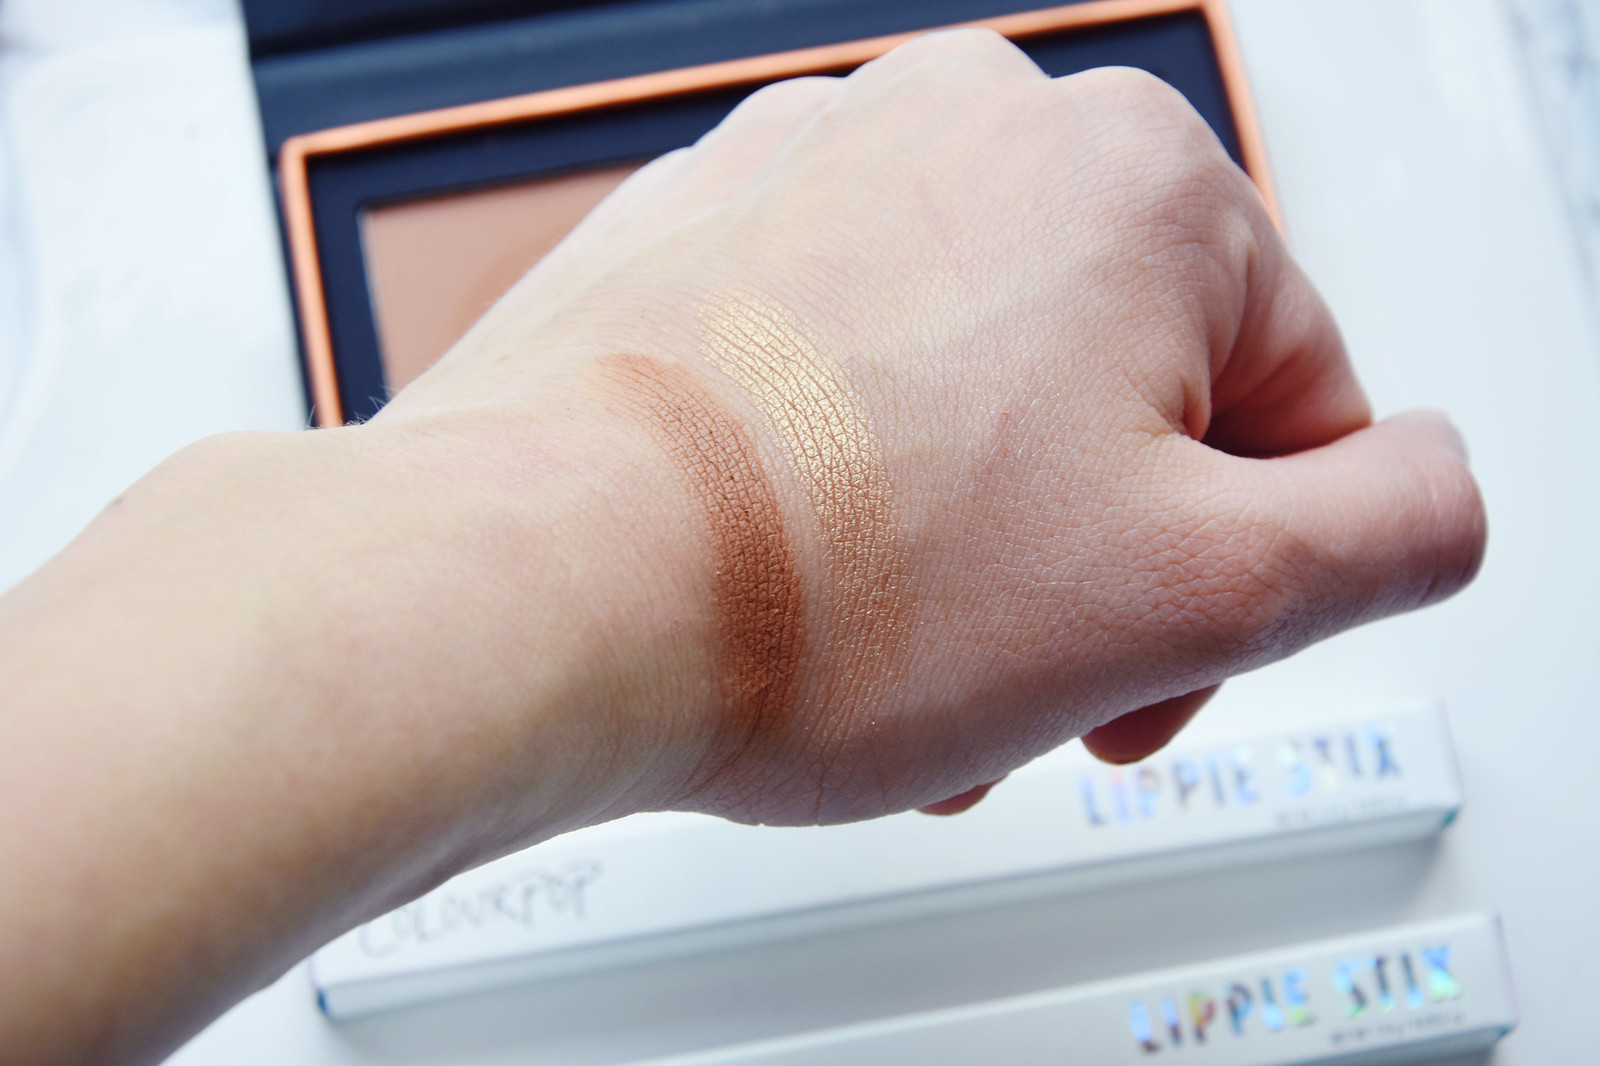 ColourPop Alexis Ren bronzer highlighter swatches